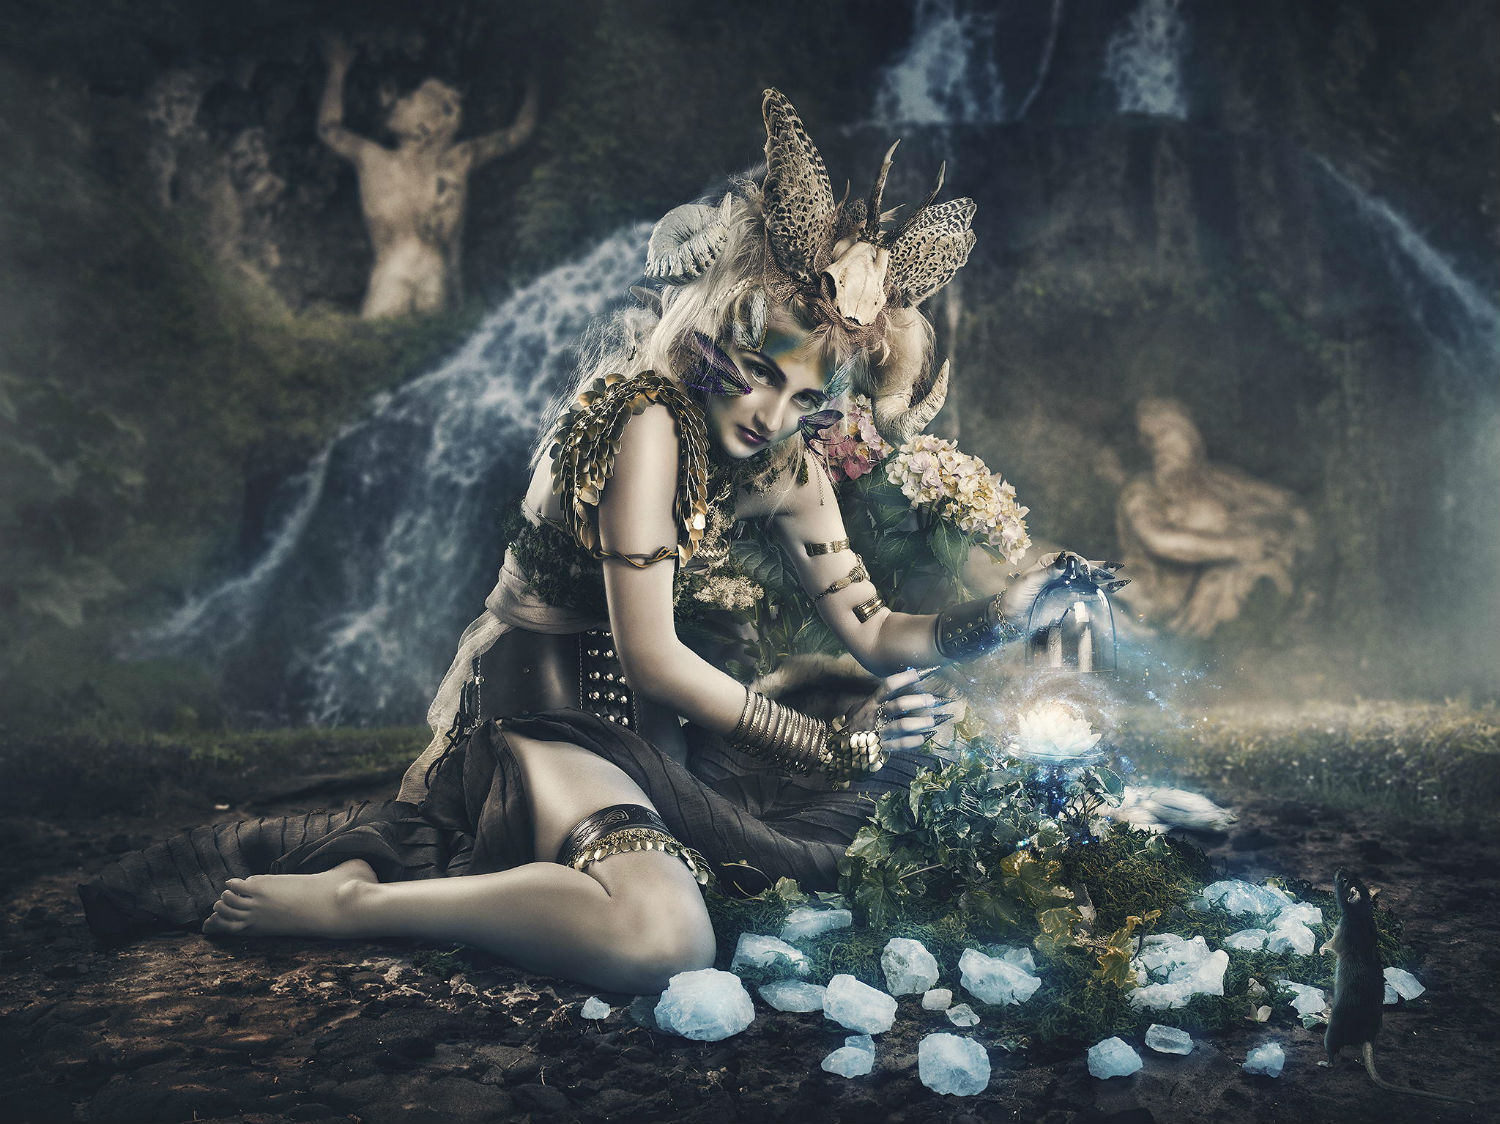 rebecca saray photography surreal Digital fantasy fairies